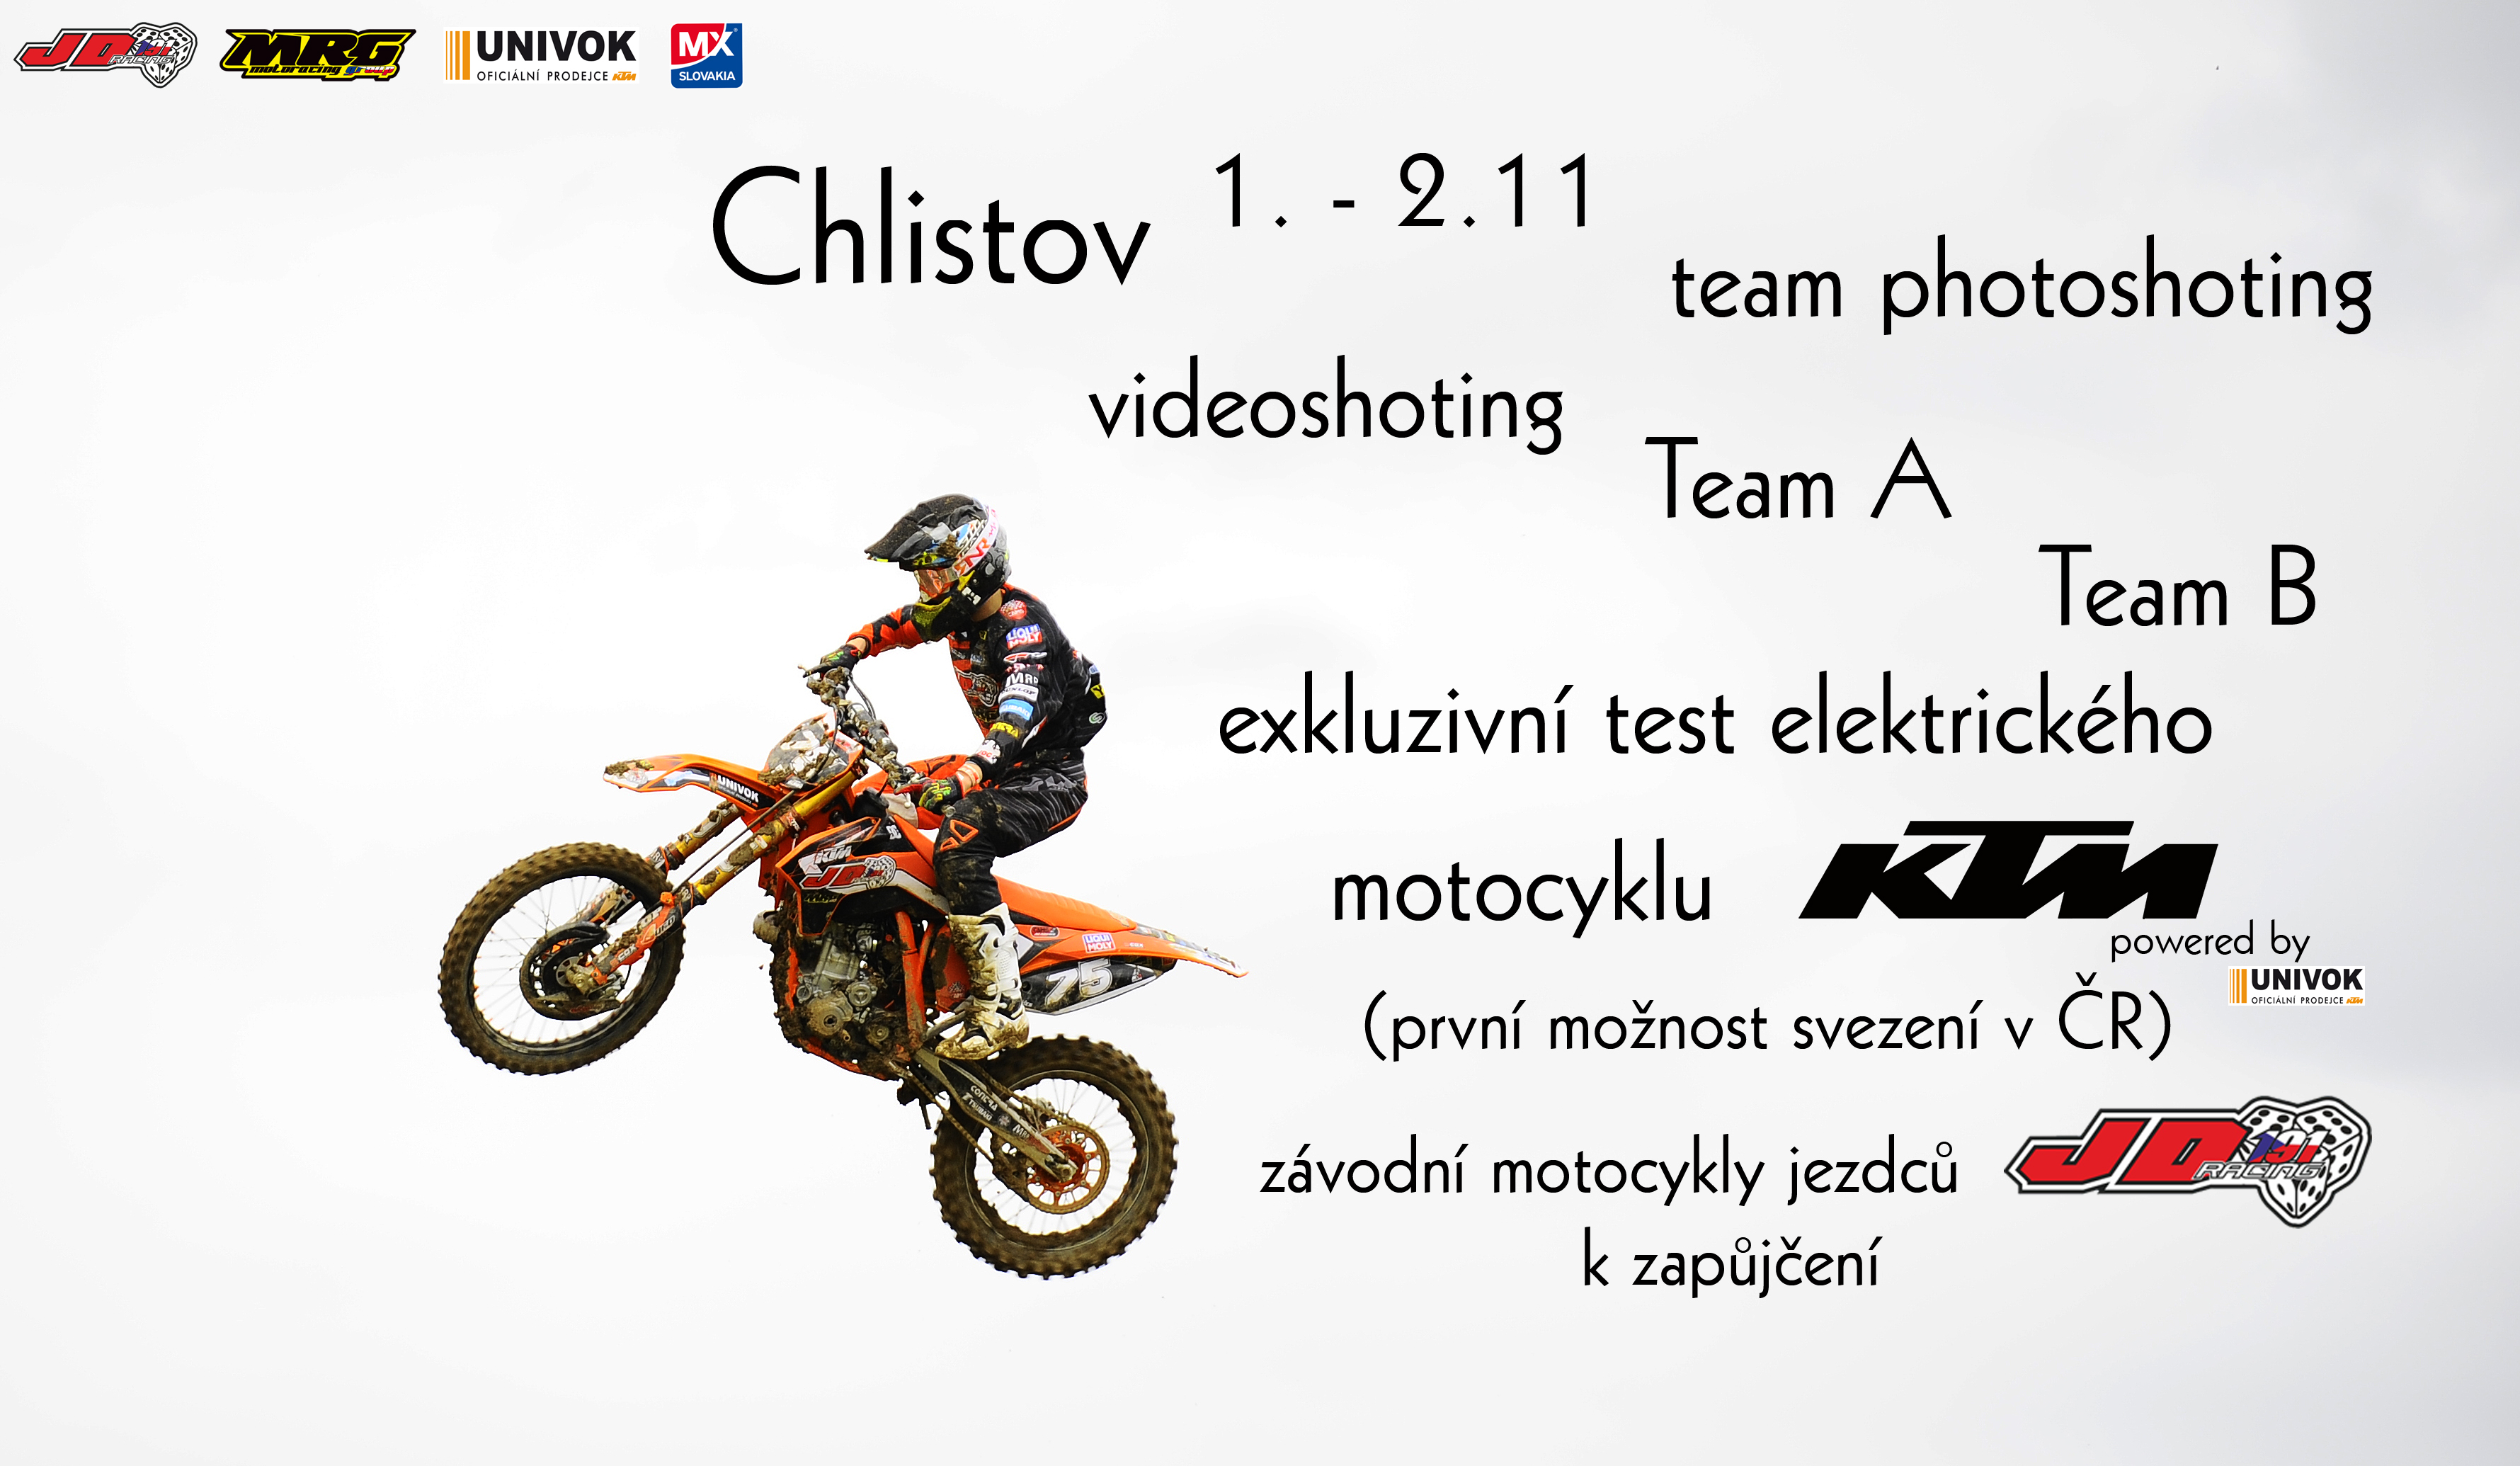 JD191KTM - MRG racing team Day Chlistov